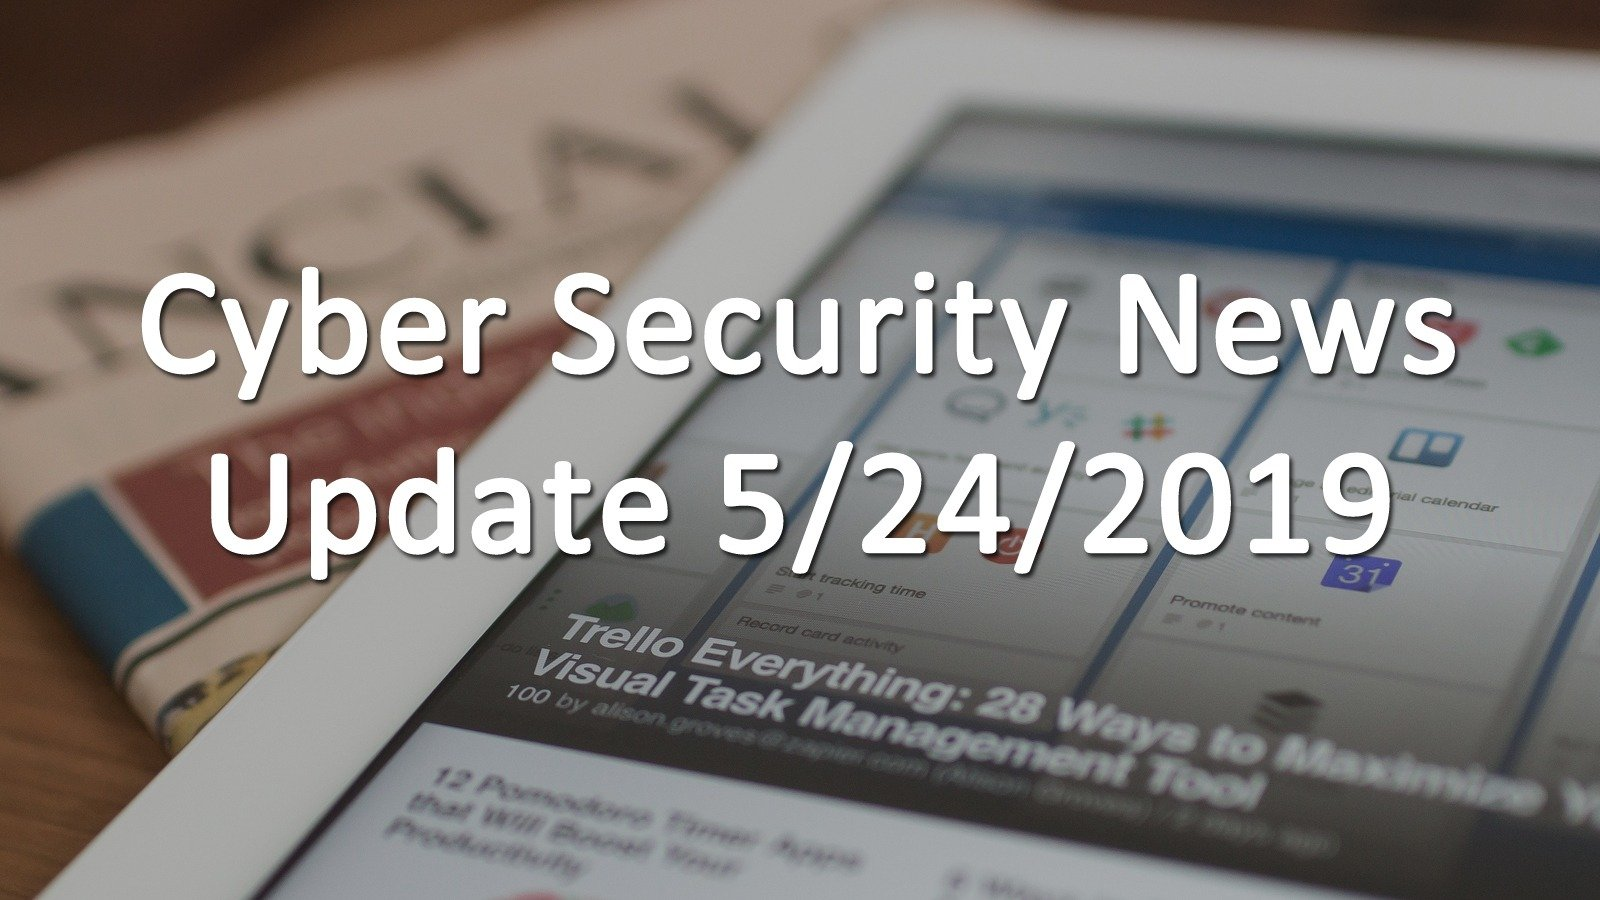 Cyber Security News Update _5_24_2019 - AskCyberSecurity com